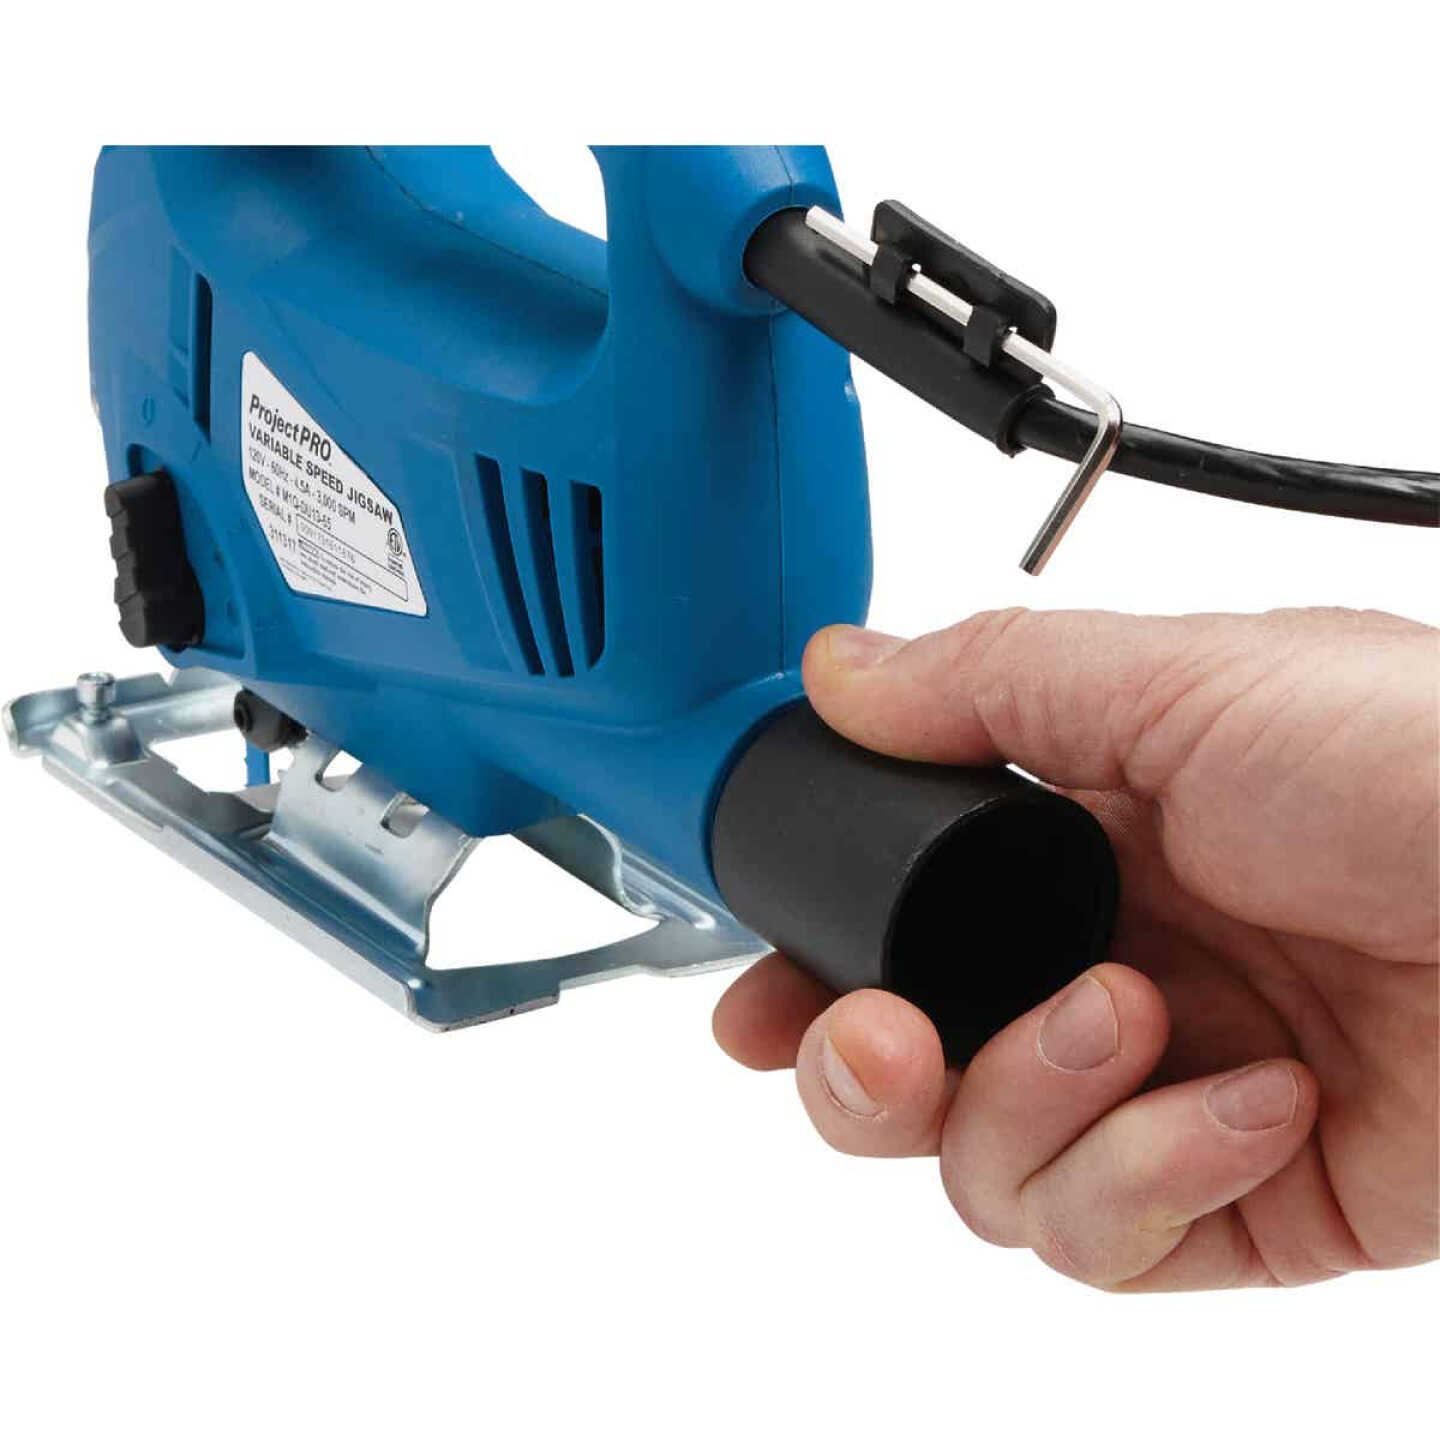 Project Pro 4.5A 0-3000 SPM Speed Jig Saw Image 11